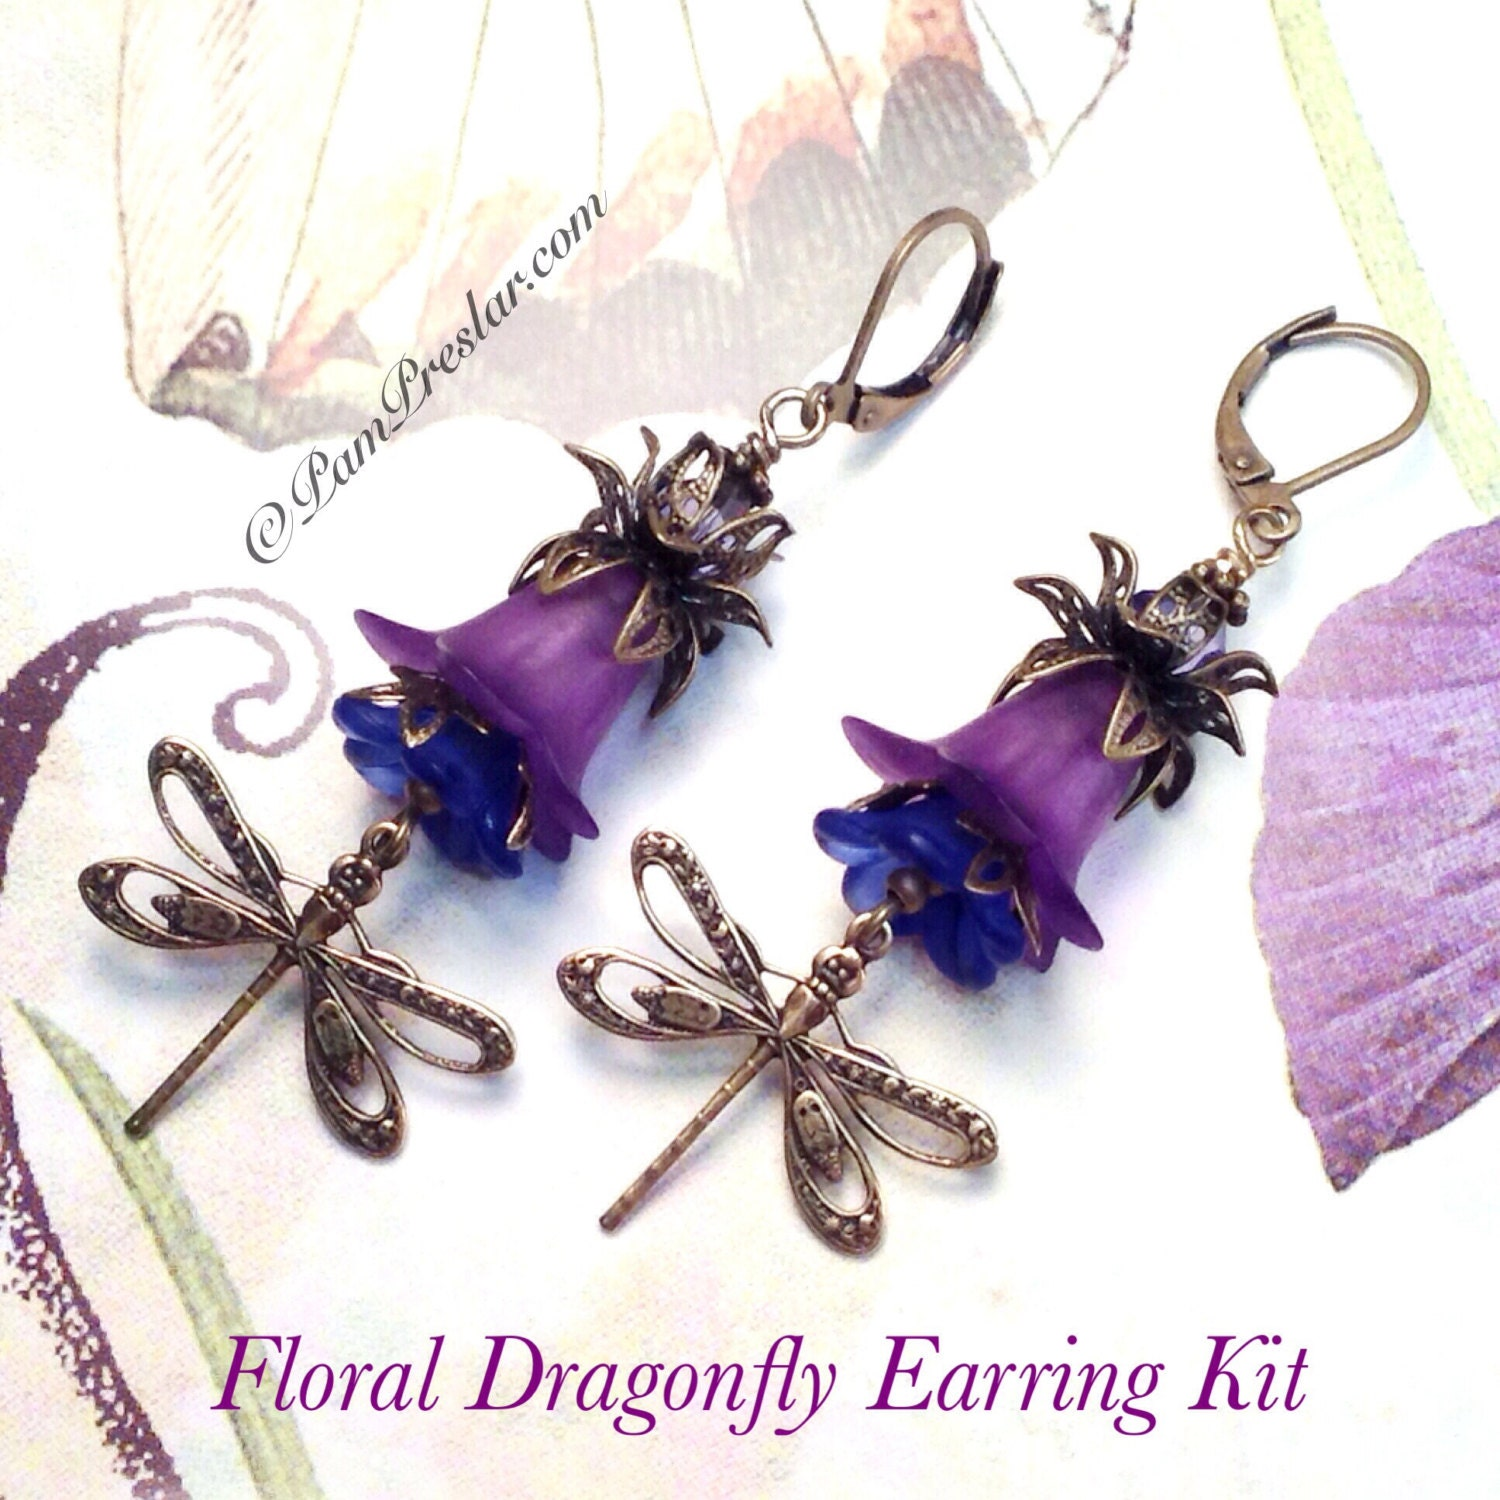 Make Your Own Necklaces And Jewelry At Home: Do It Yourself Jewelry Kit Make Your Own Earrings Kit Purple